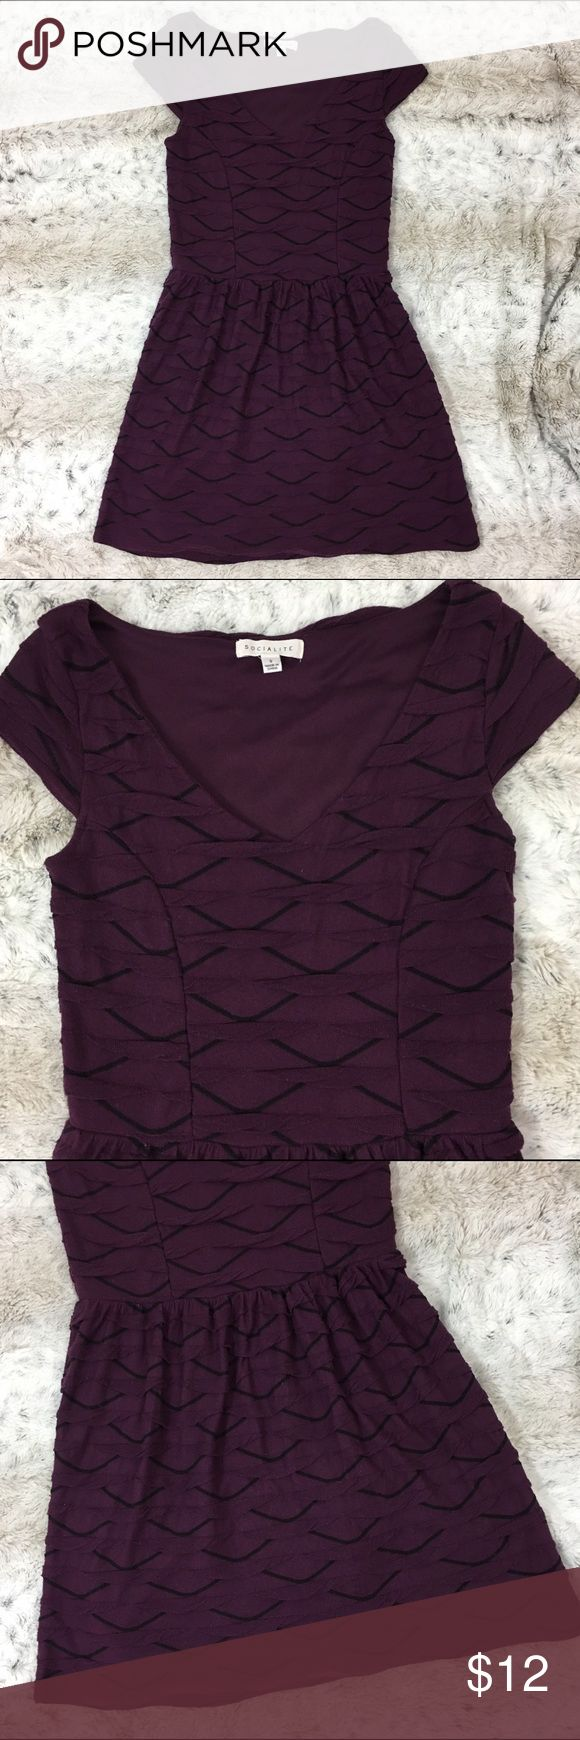 Socialite purple tea dress short sleeve mini Textured print dress in purple and black. Defined waist, flowy skirt with lining. Great condition. Socialite Dresses Mini